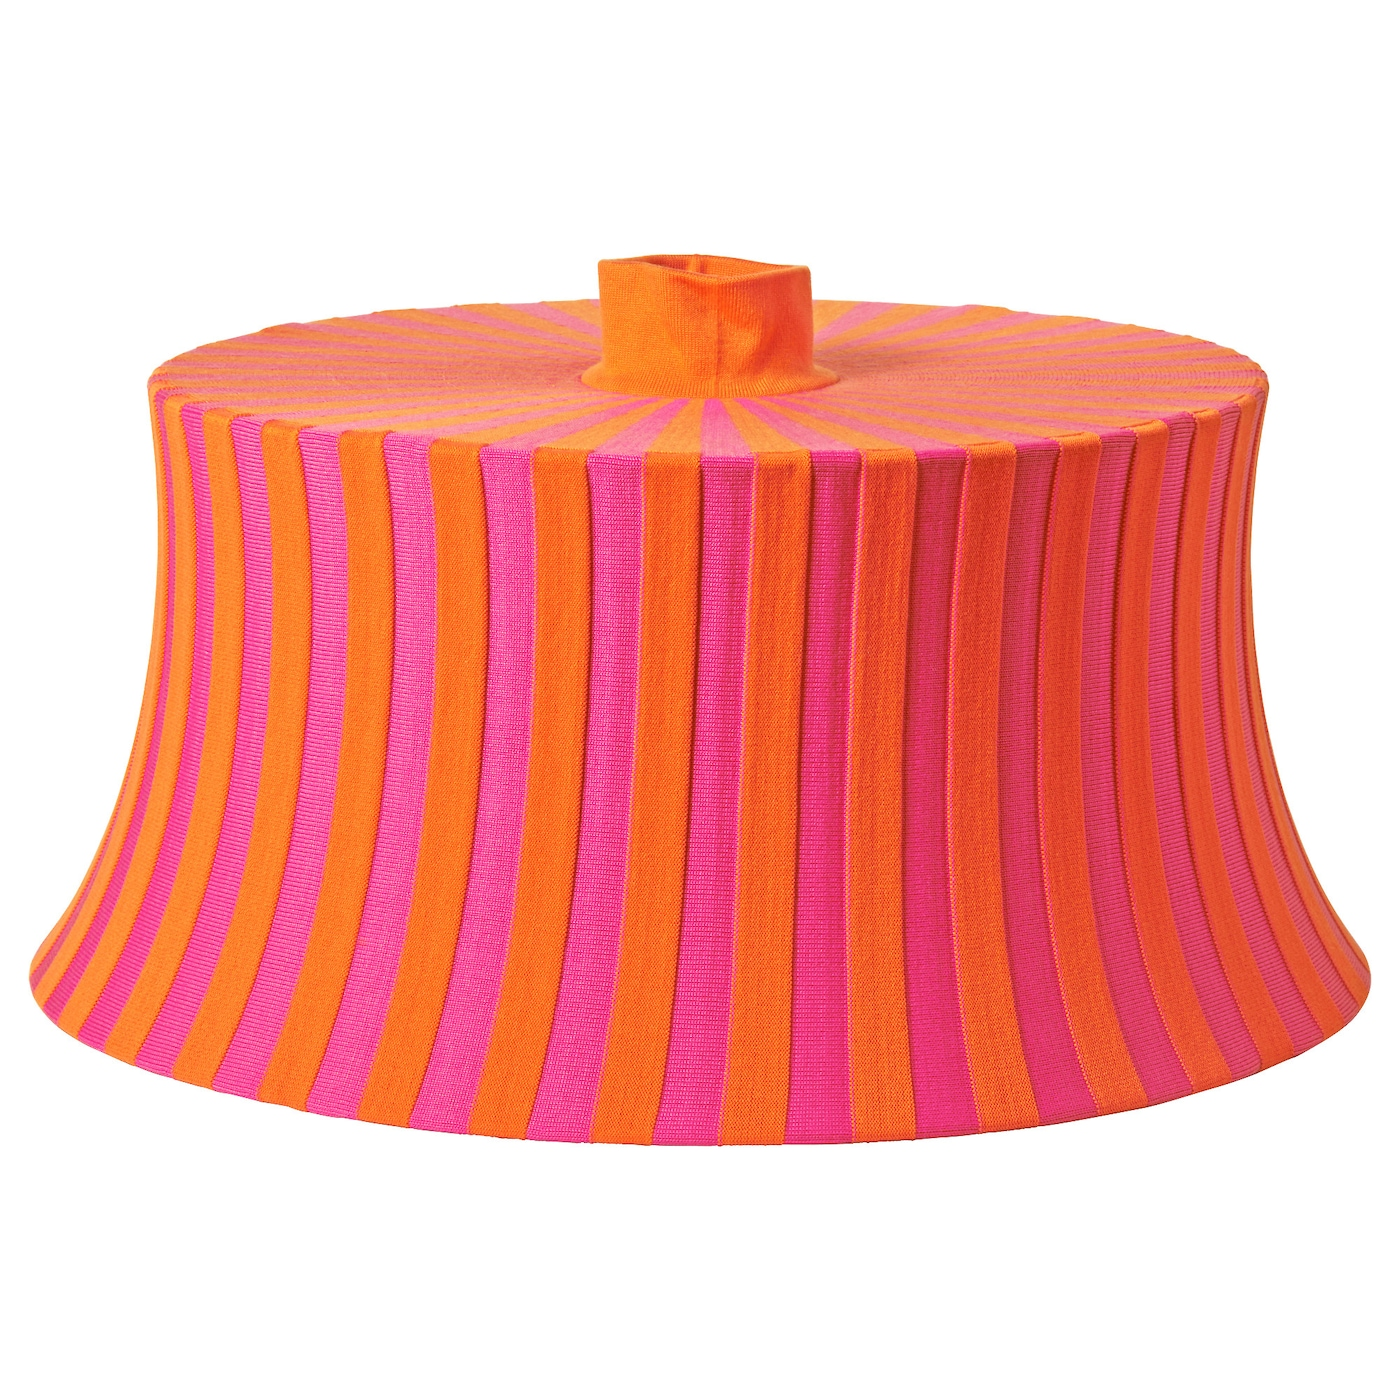 IKEA ÄMTEVIK lamp shade The shade is easy to keep clean because the fabric is machine washable.